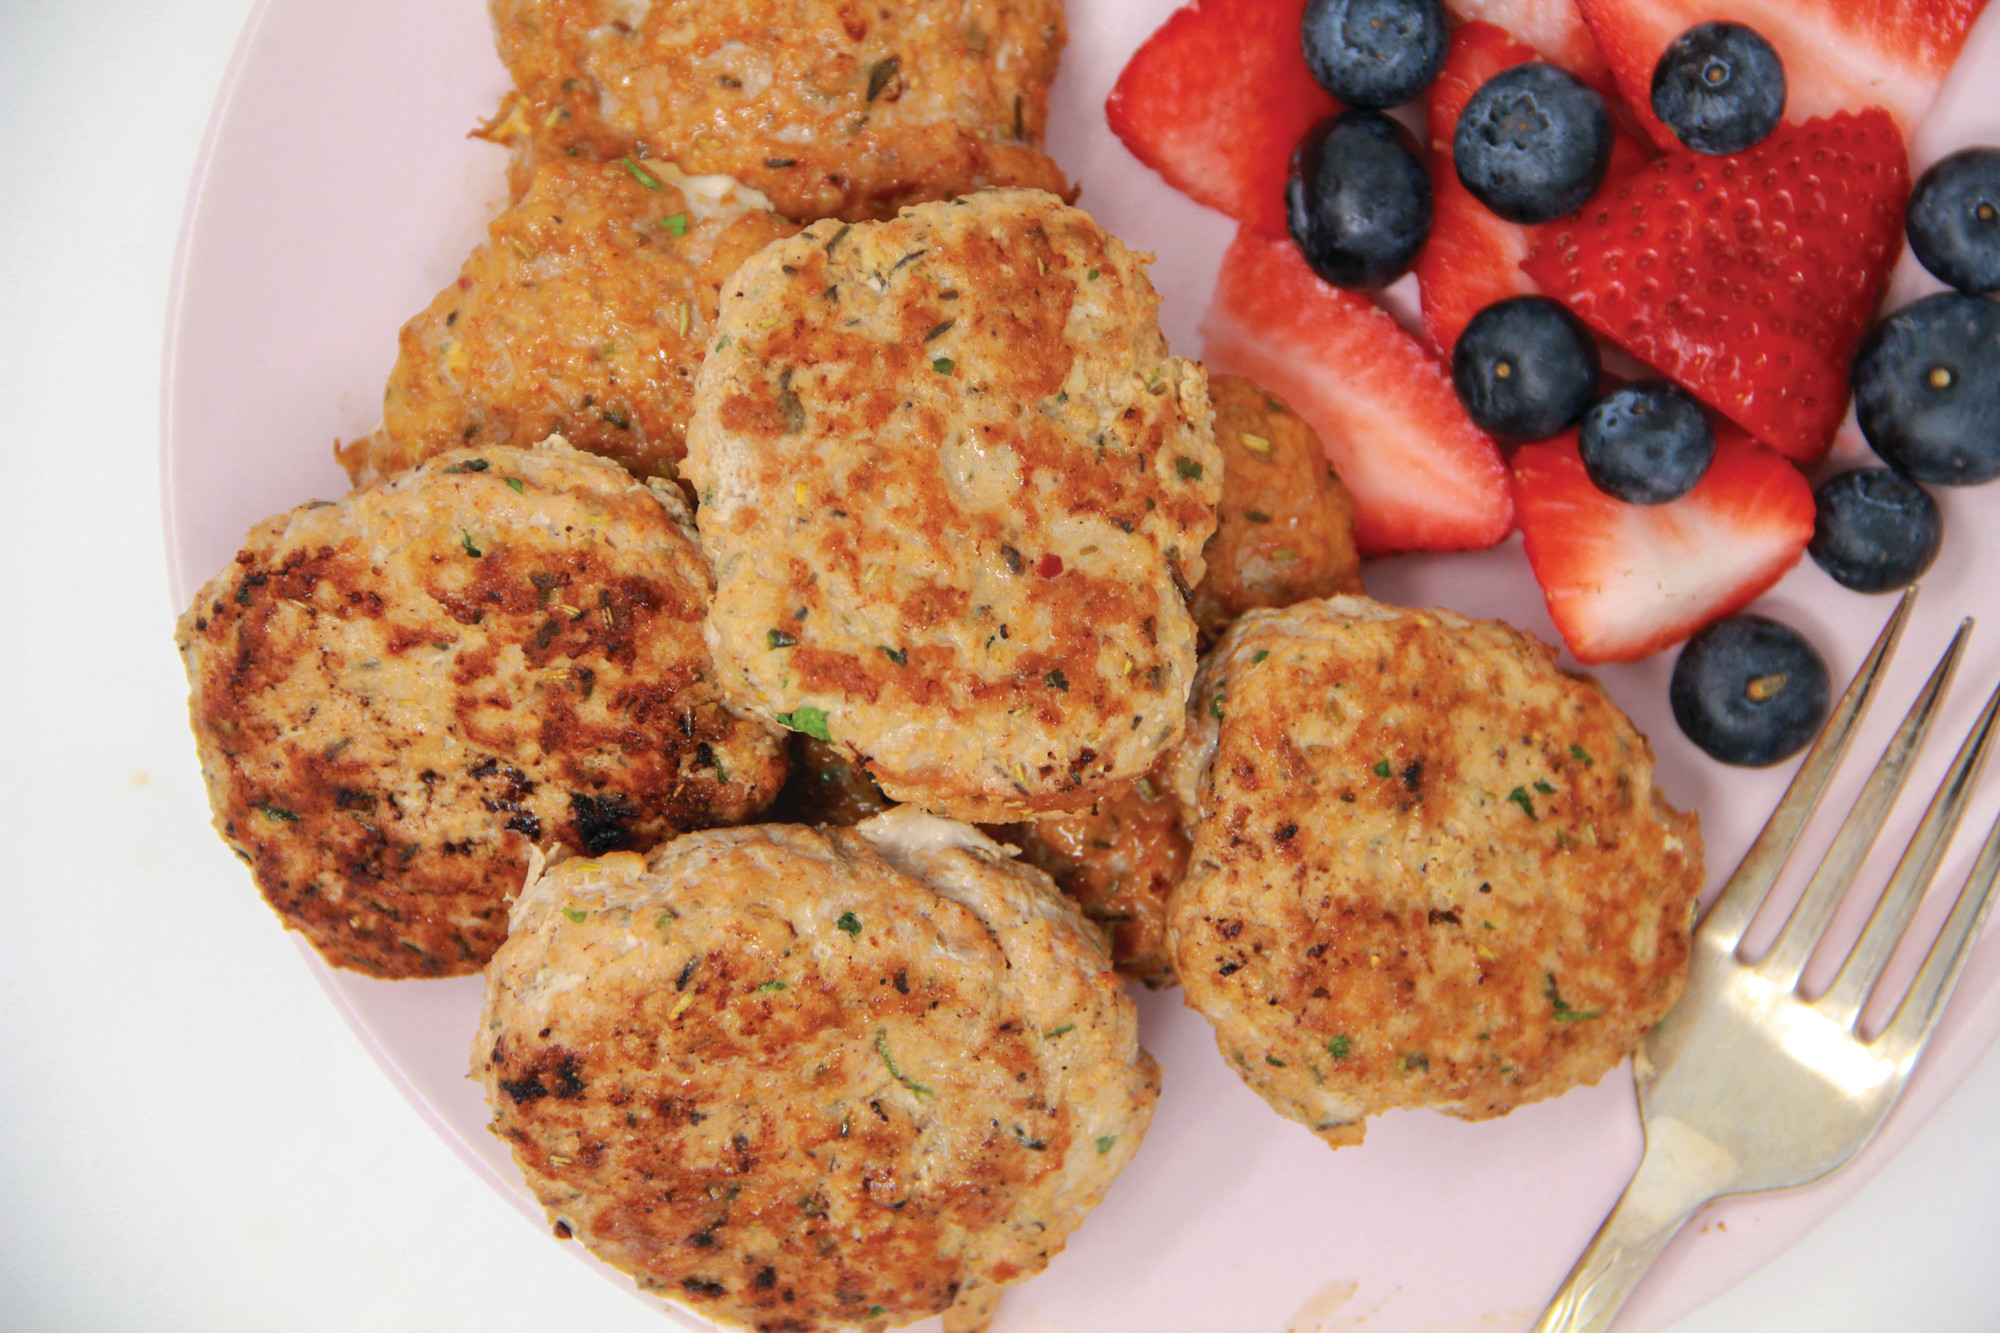 Homemade turkey breakfast sausage is seen in Bethesda, Maryland. Making your own breakfast sausage patties is surprisingly quick and just plain smart: you can adjust flavors according to your preferences and control the quality of the ingredients.